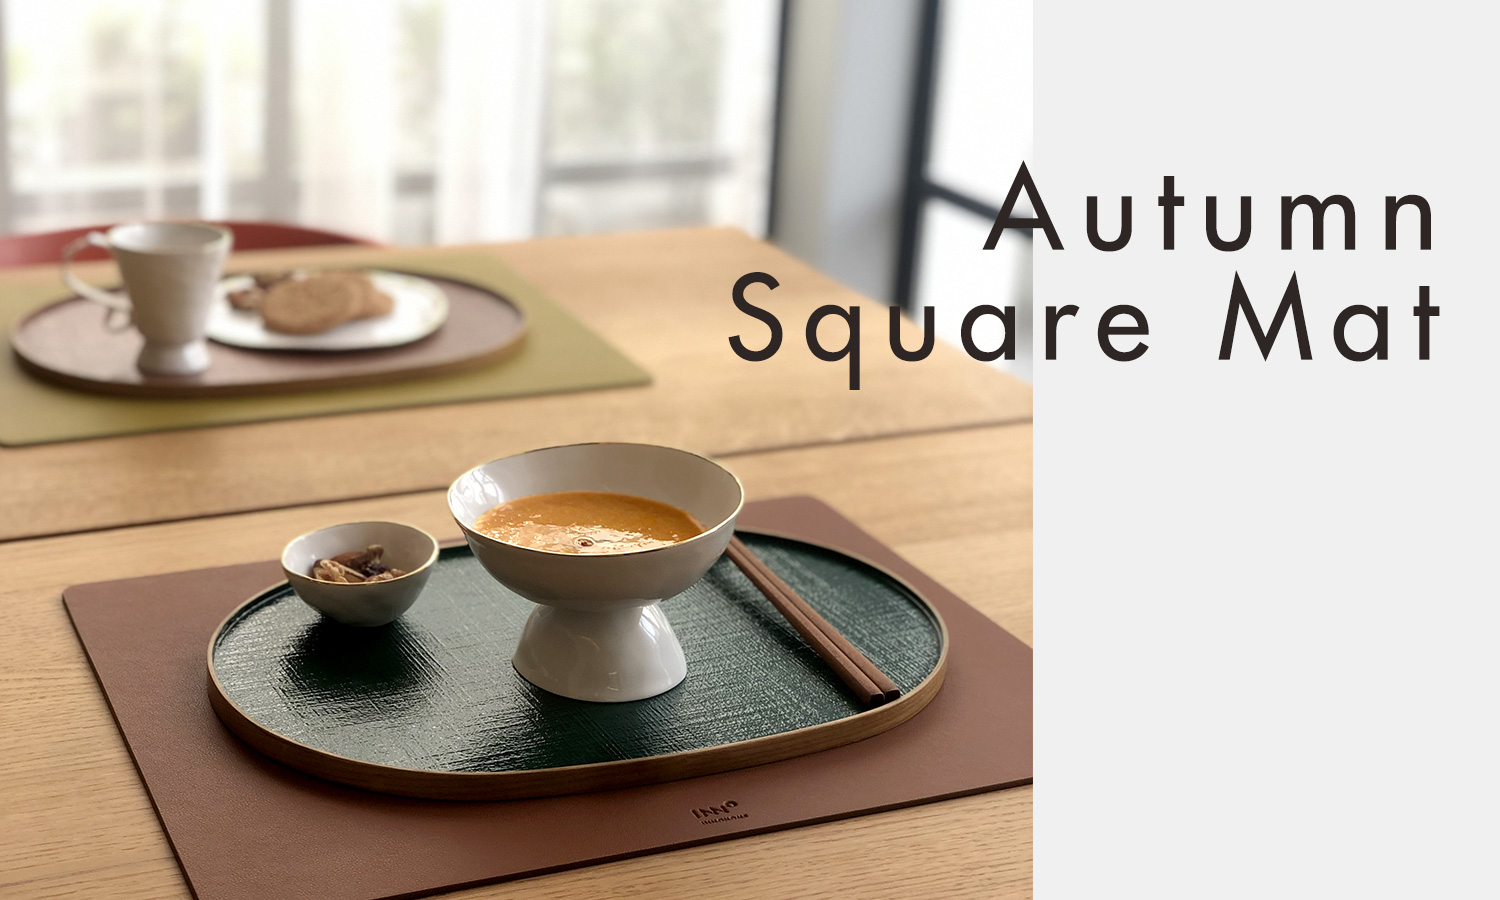 Autumn Square Mat